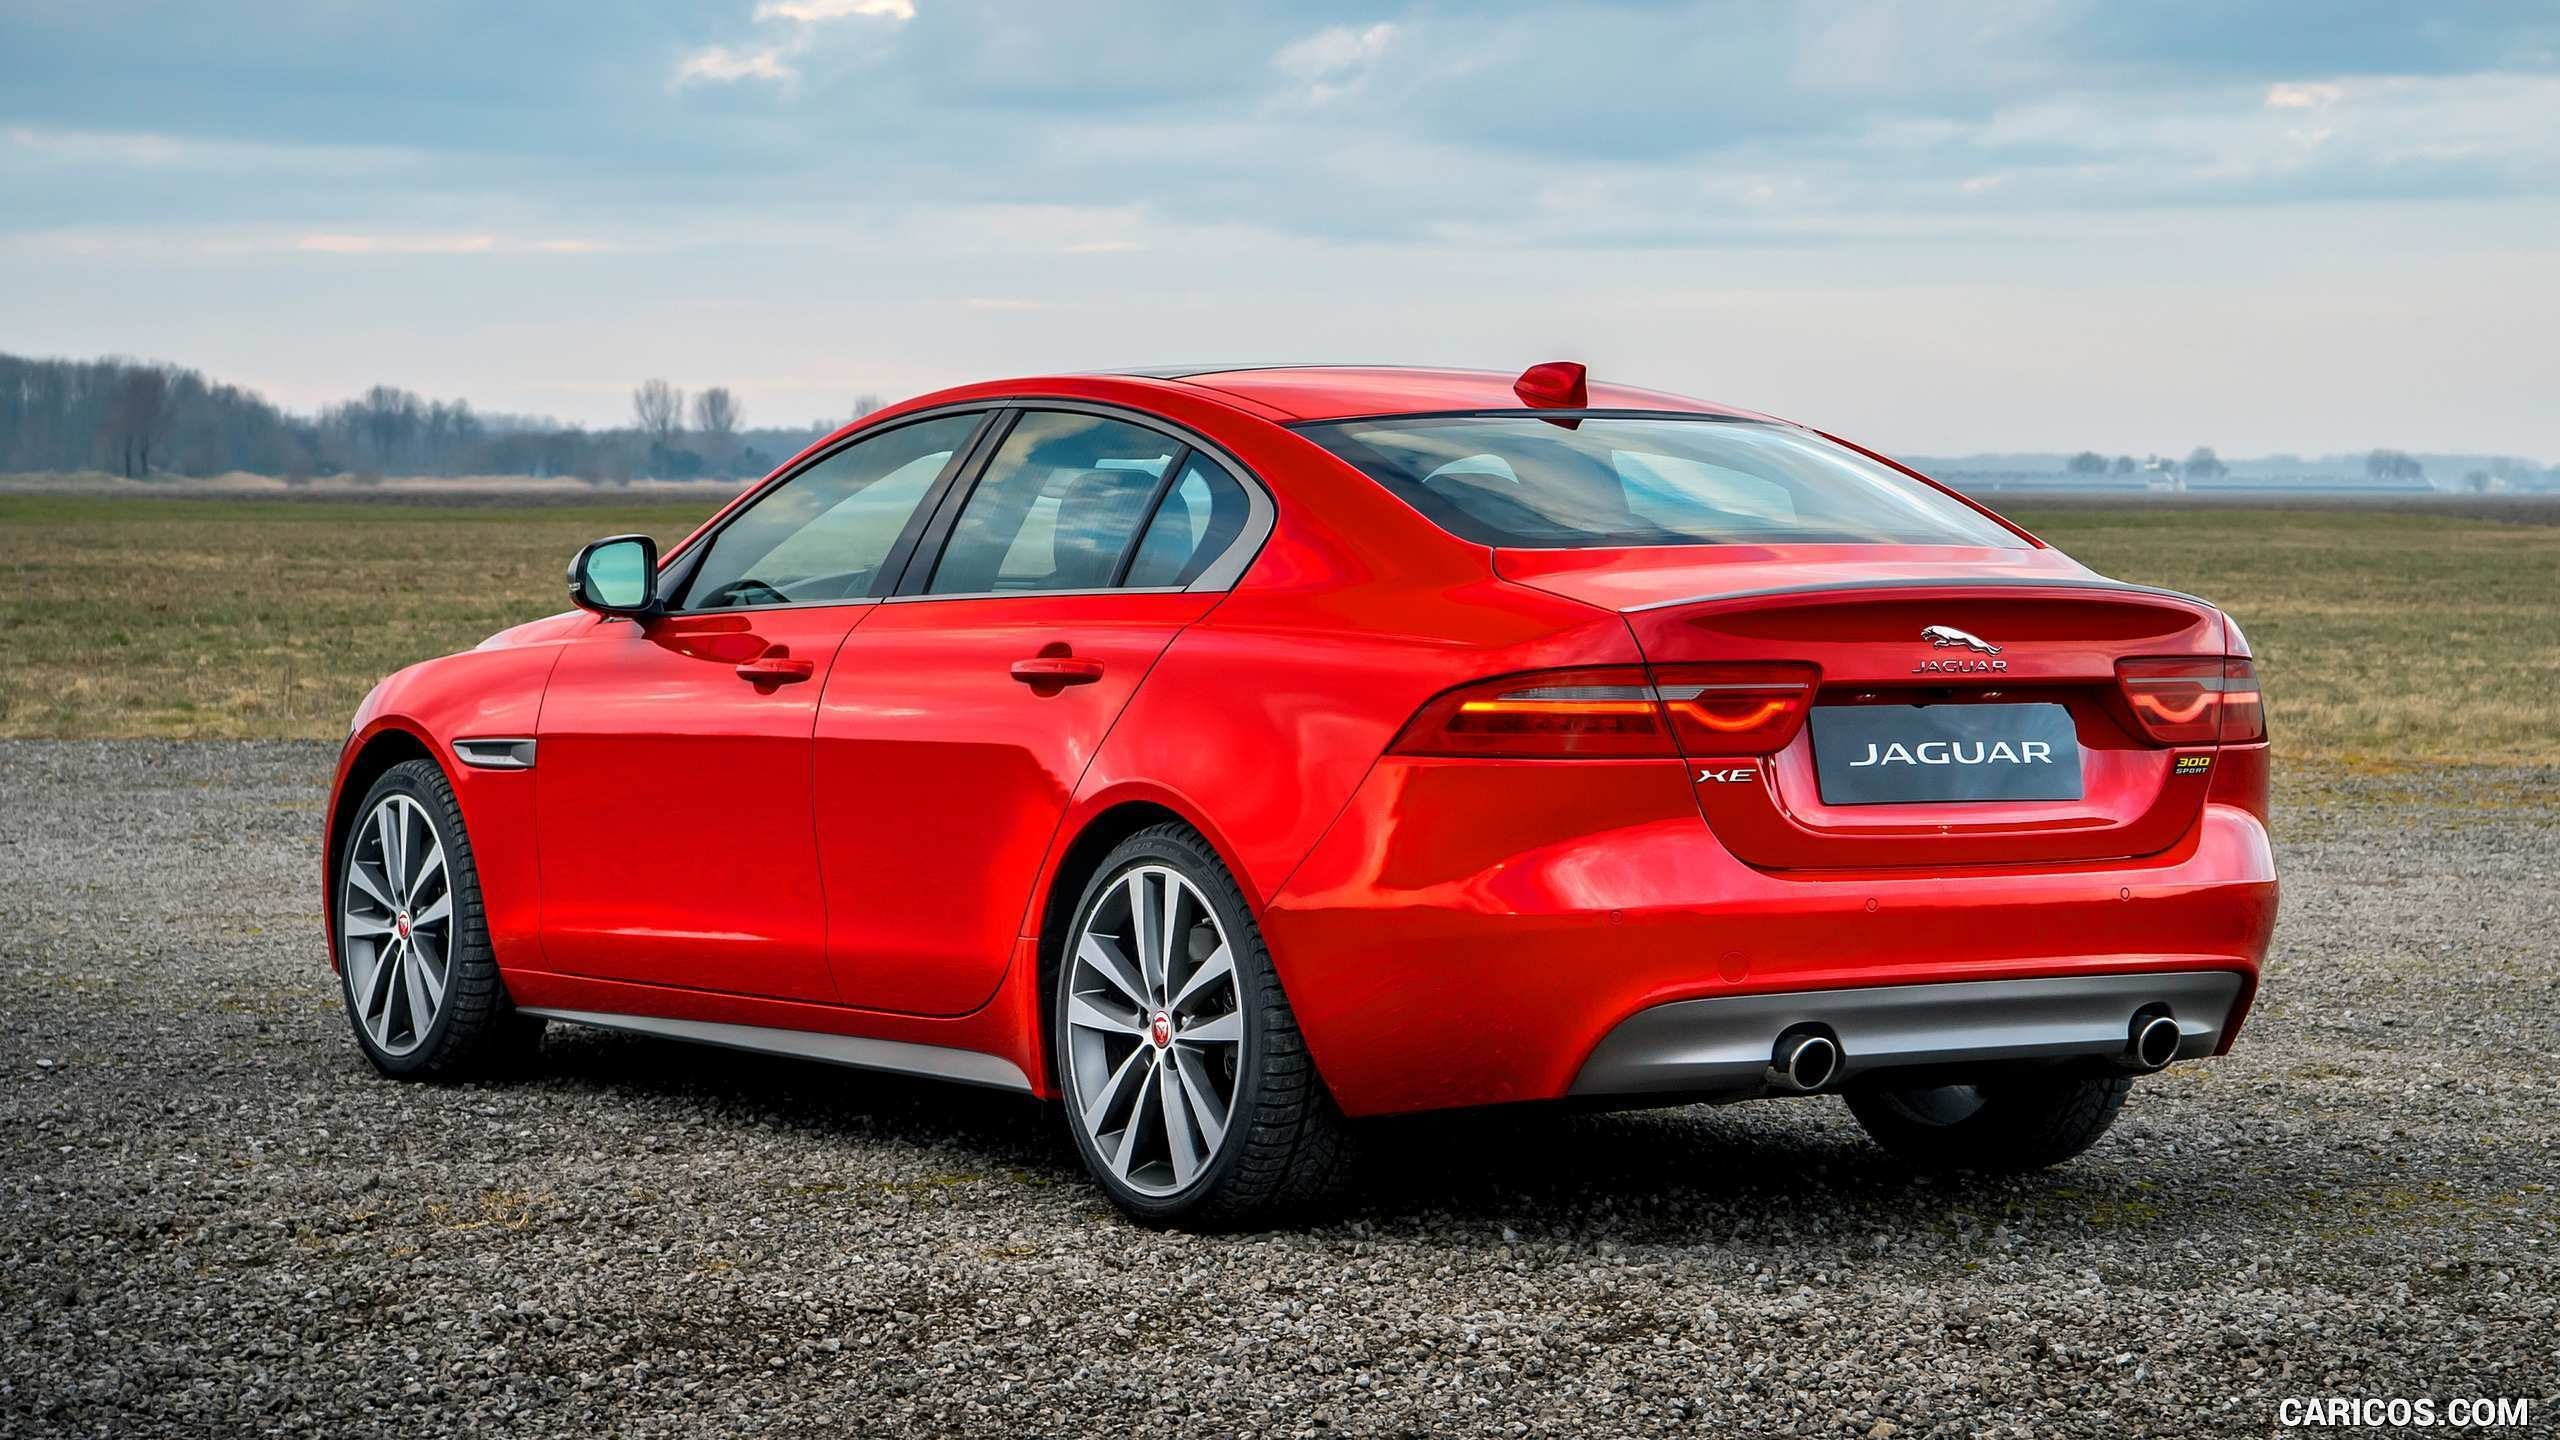 51 Gallery of New Xe Jaguar 2019 First Drive Price Performance And Review Reviews for New Xe Jaguar 2019 First Drive Price Performance And Review